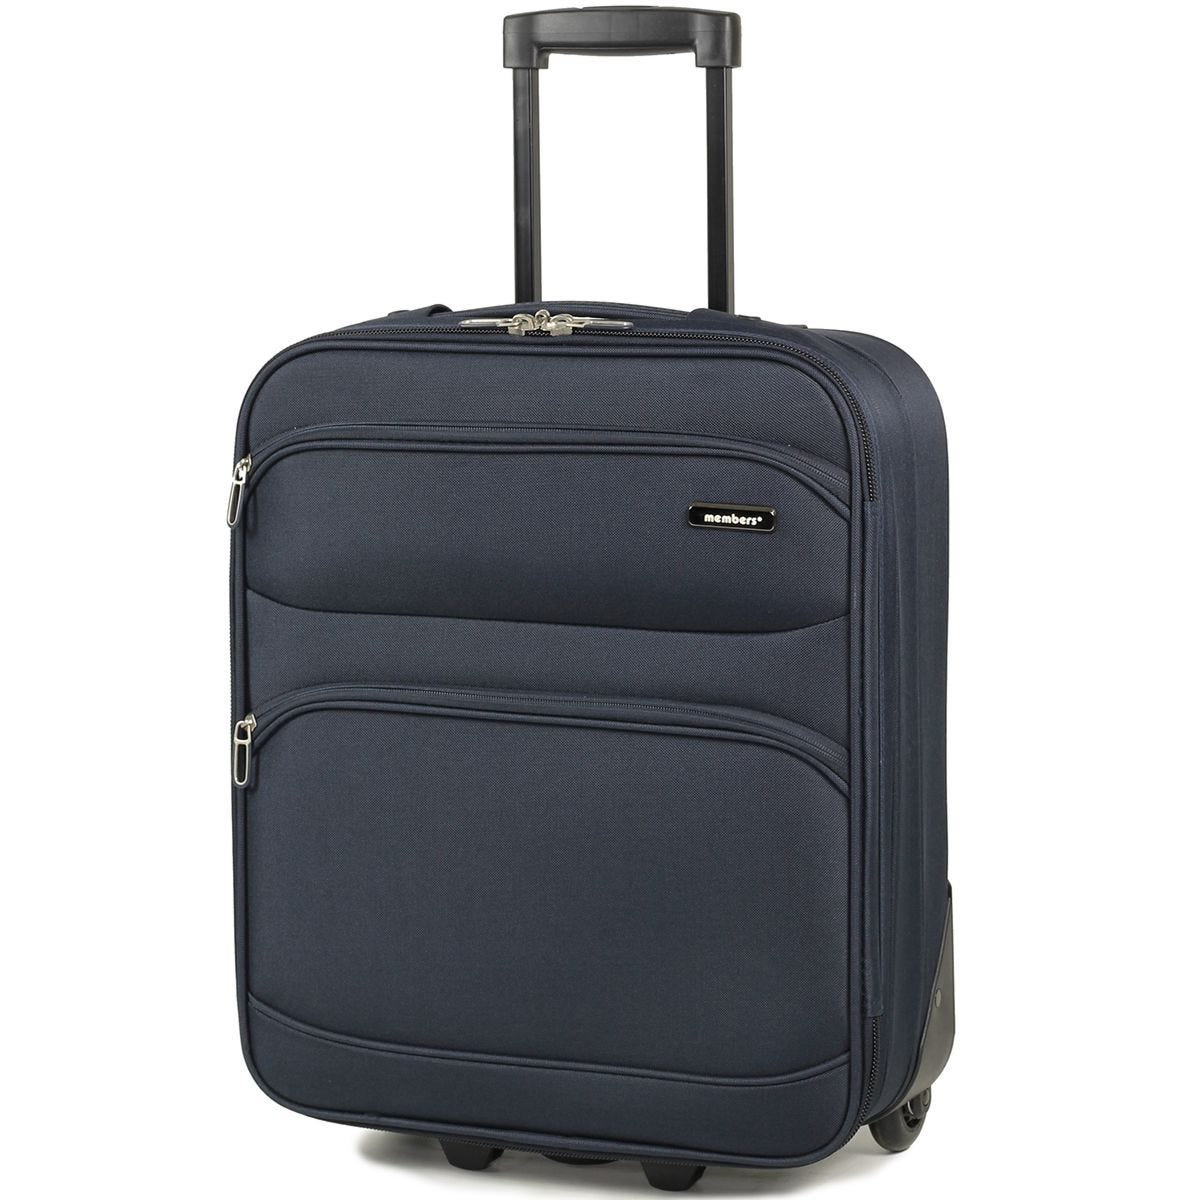 Members Topaz 55cm Carry-on Lightweight Two Wheel Trolley Suitcase - Navy